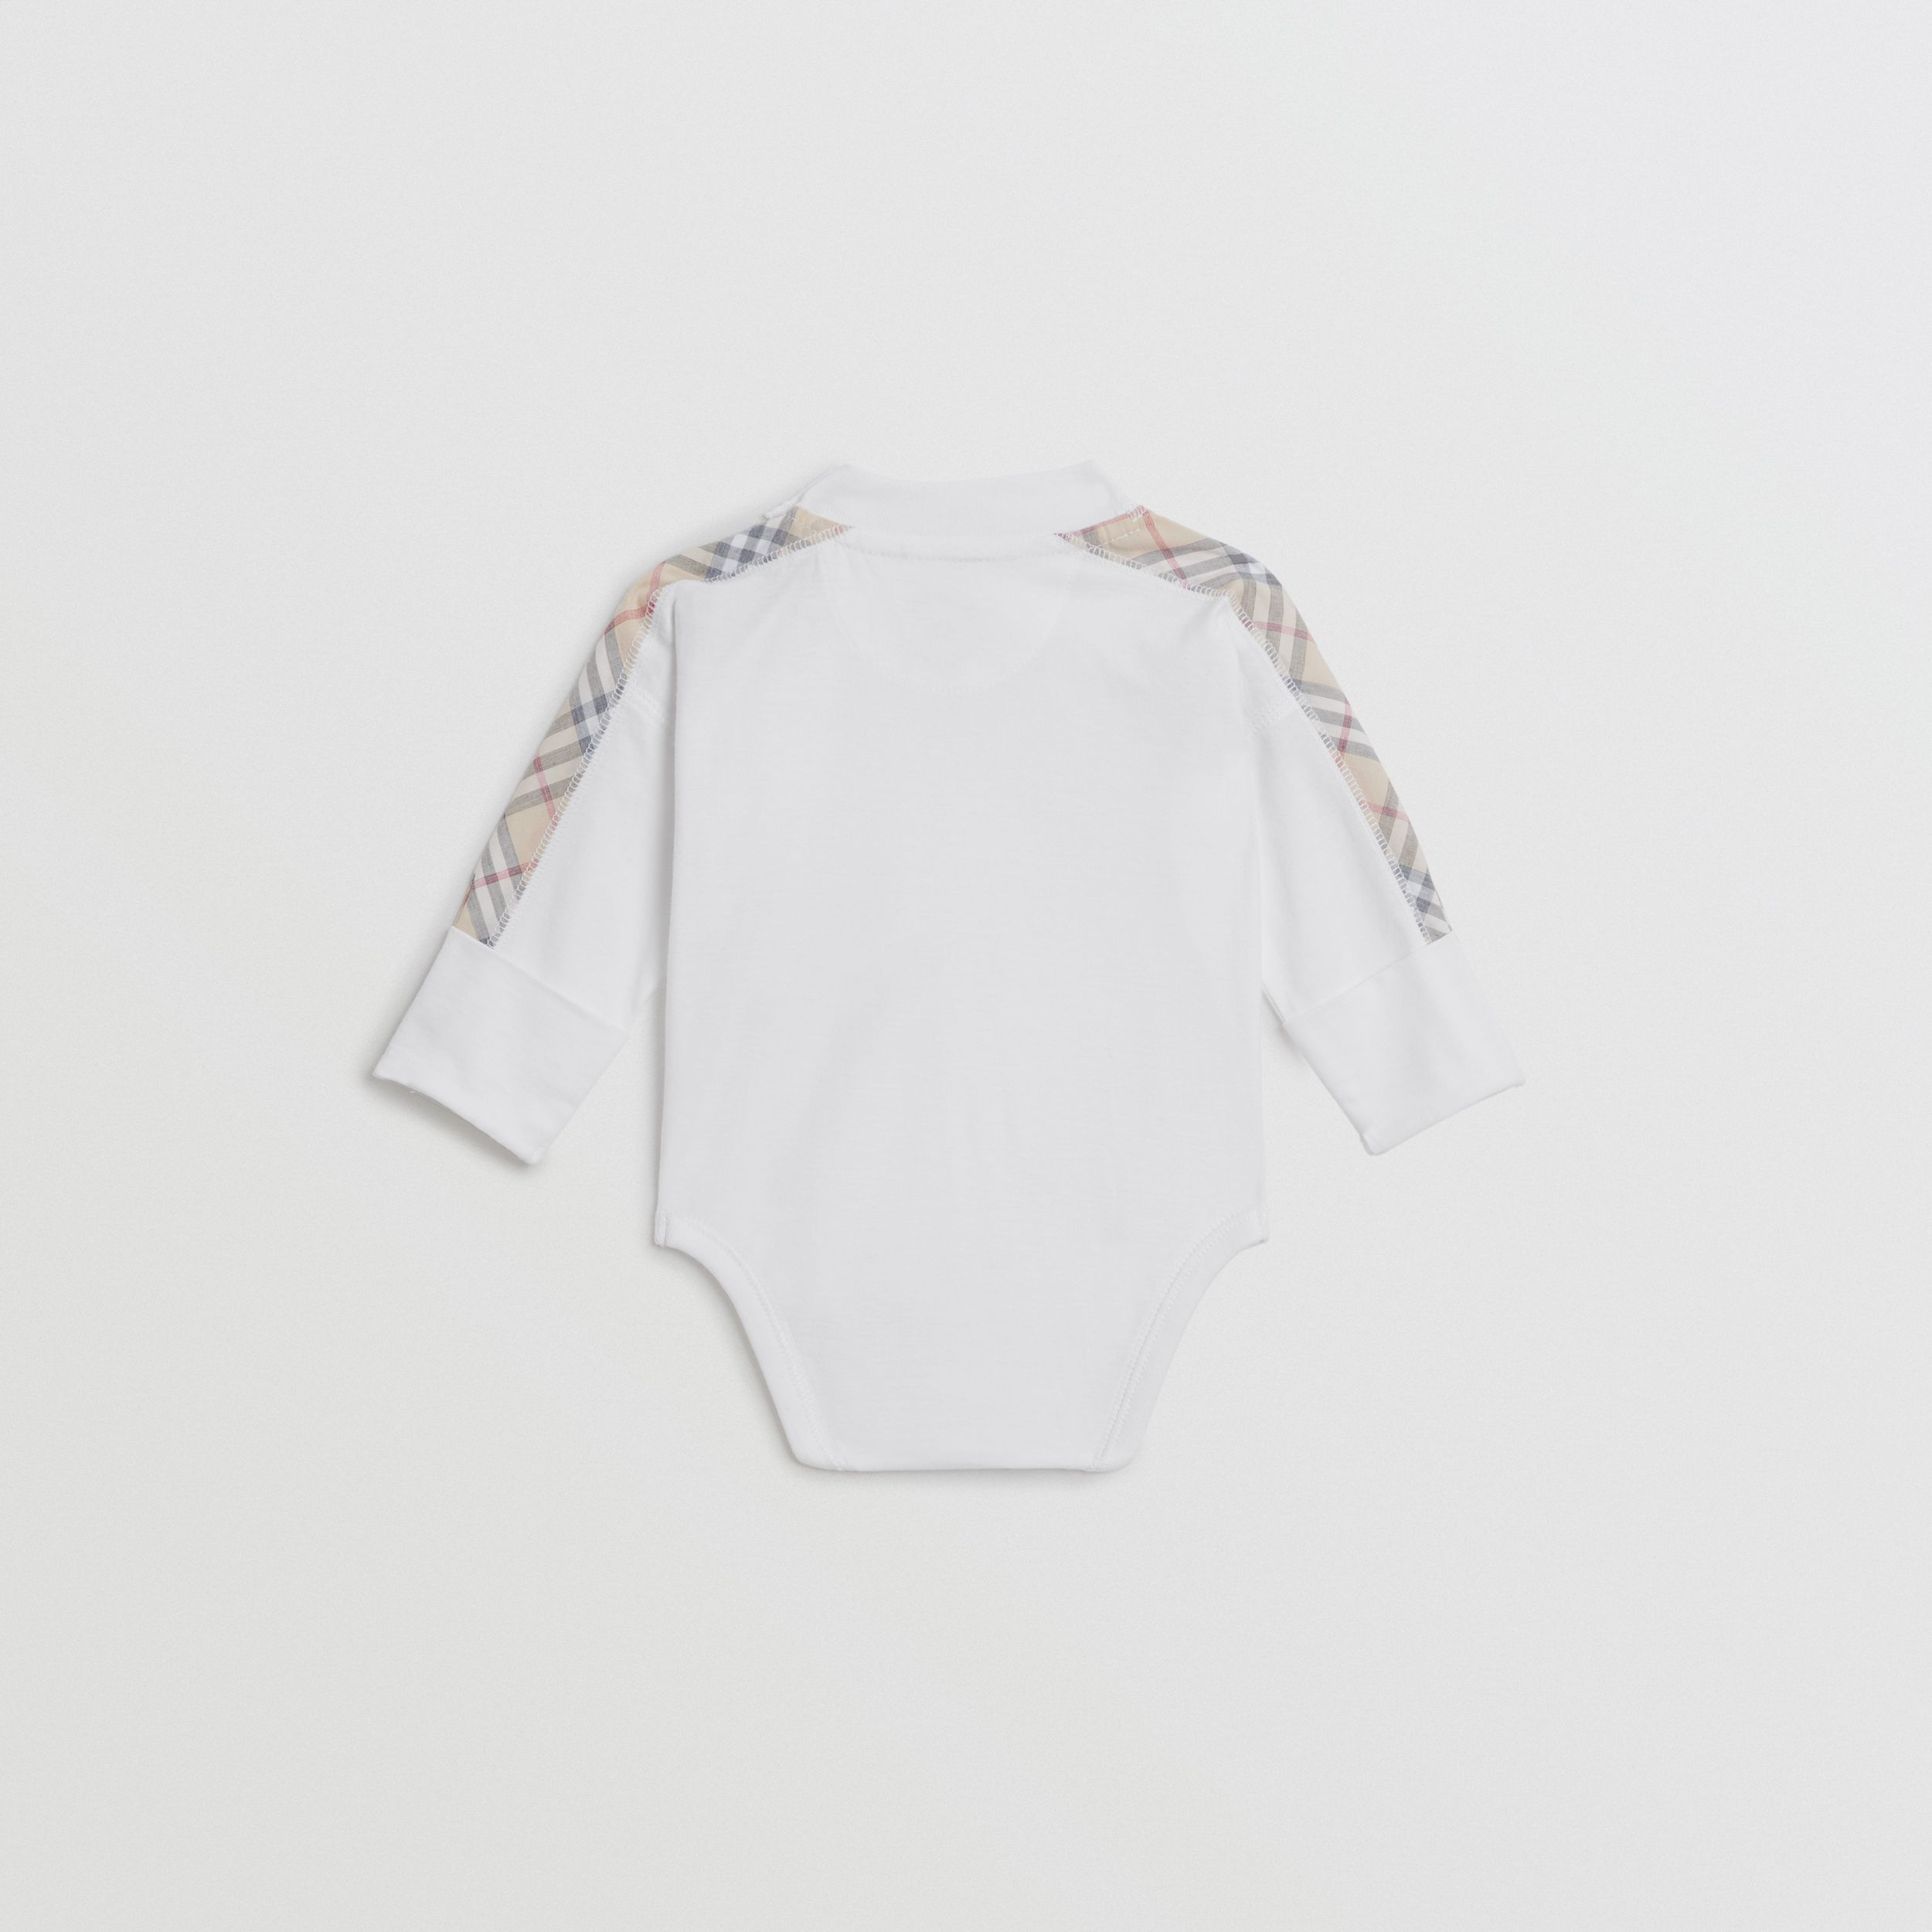 Check Cotton Three-piece Baby Gift Set in White - Children | Burberry - 4